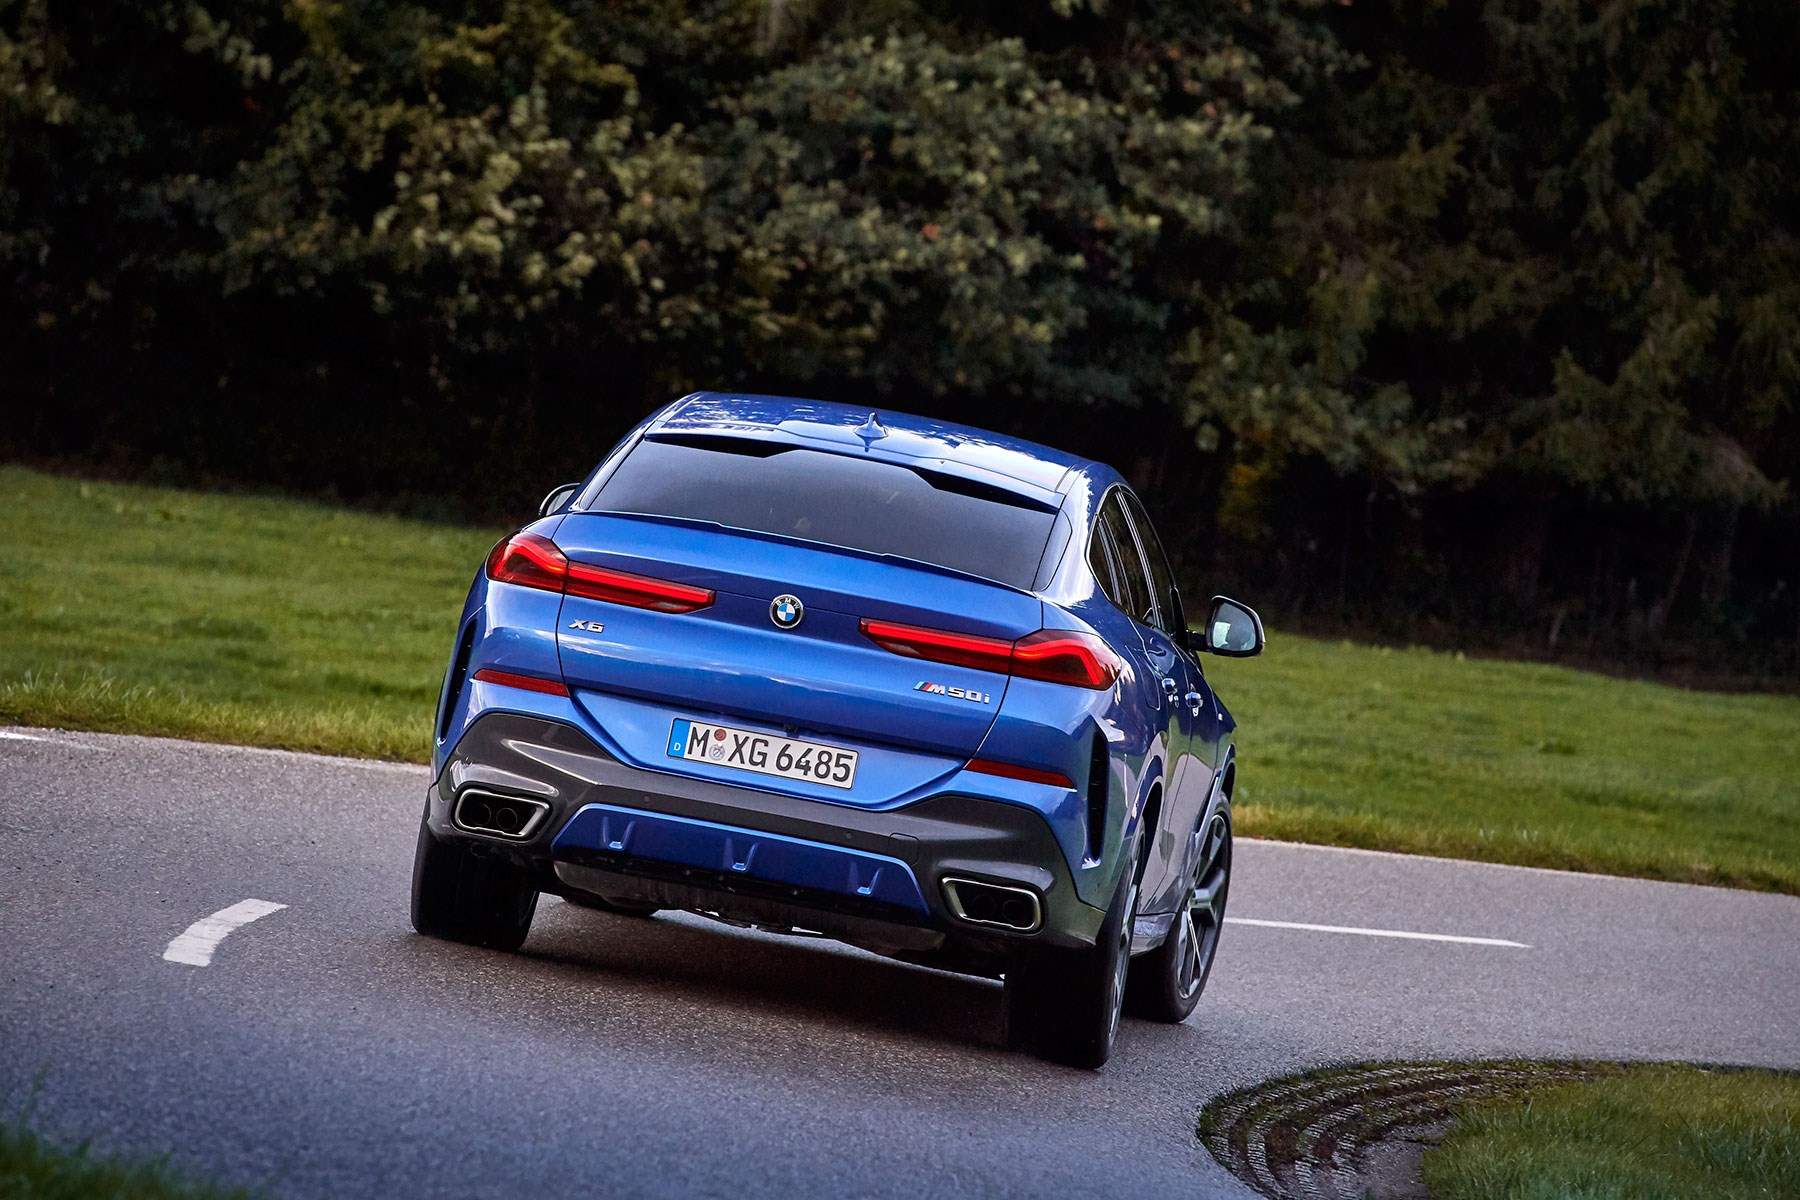 BMW X6 review: we drive the Mk3 SUV